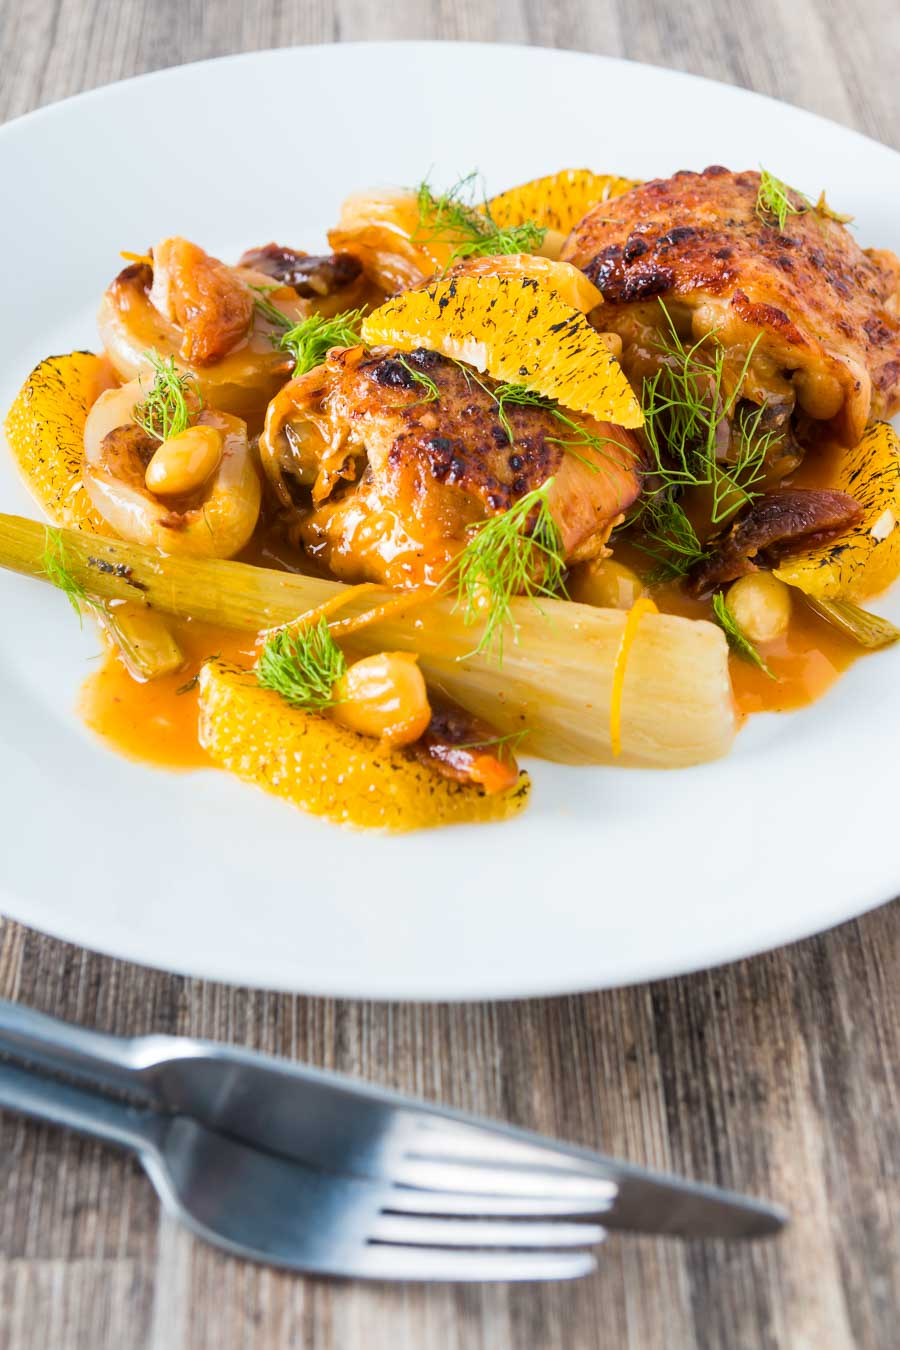 Cooking these Fruity Fennel Chicken Thighs in an Instant Pot reduces the time an old favourite slow cooker recipe cooks by 5 hours.